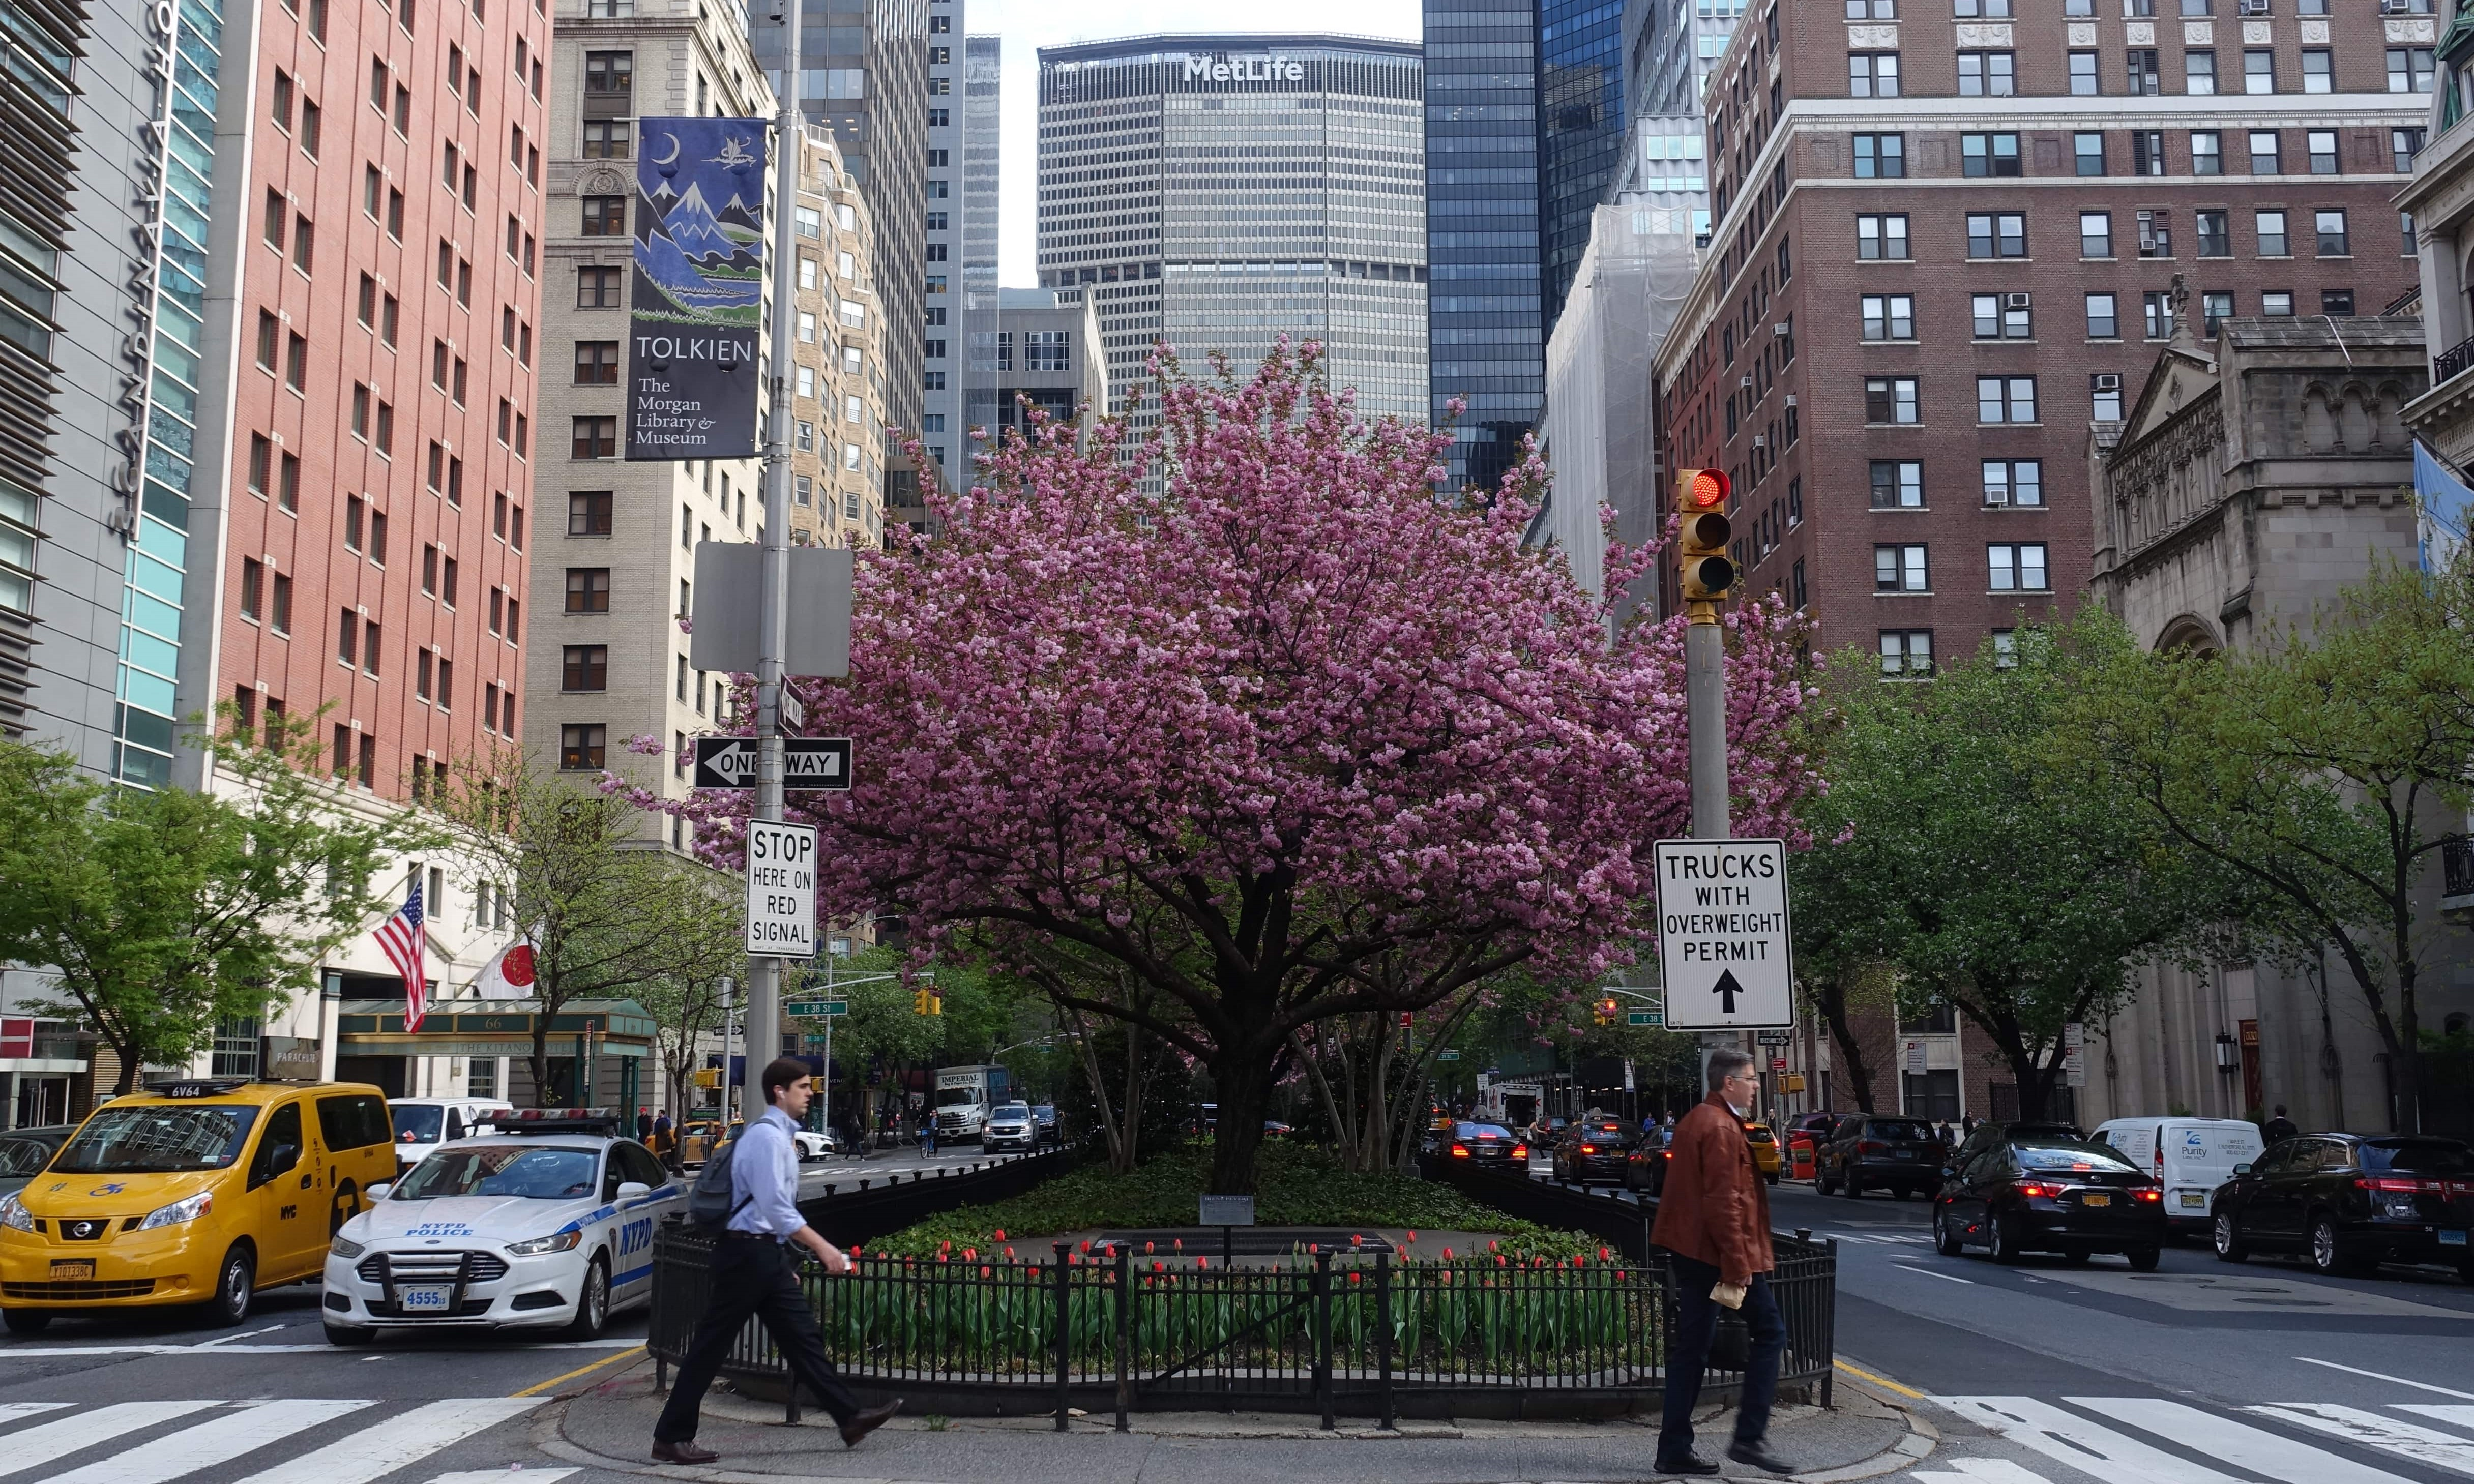 Murray Hill cherry blossom trees in front of MetLife building